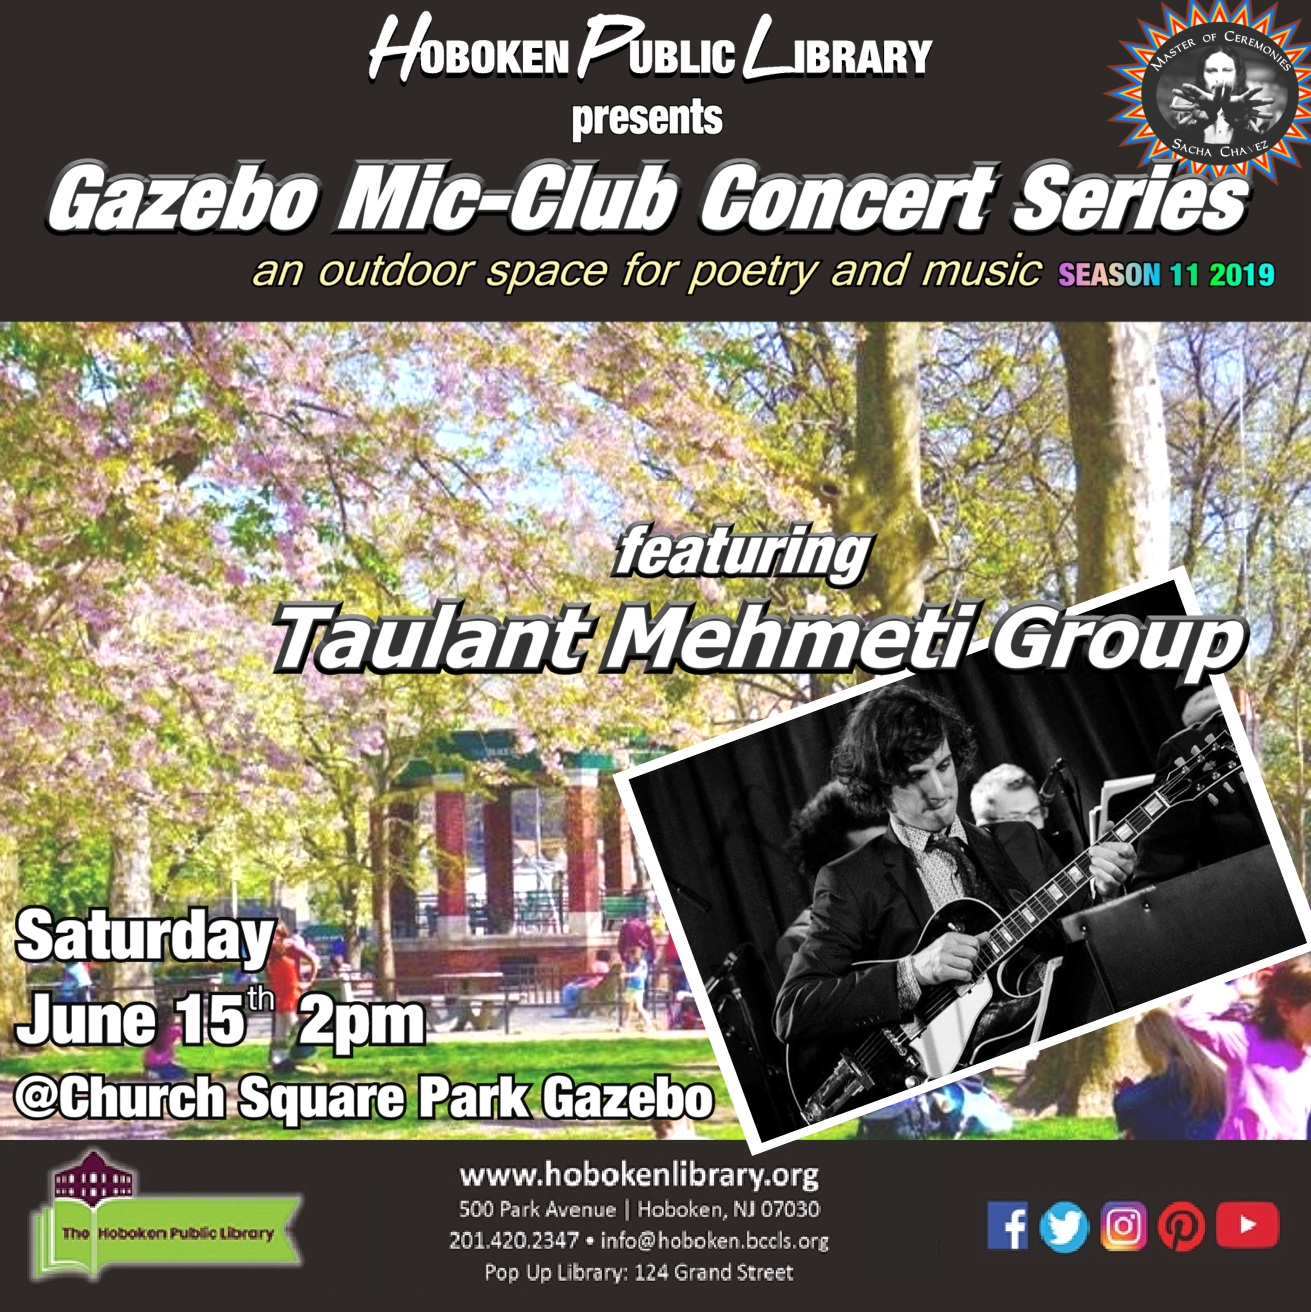 Gazebo Mic Club Concert: Taulant Mehmeti Group